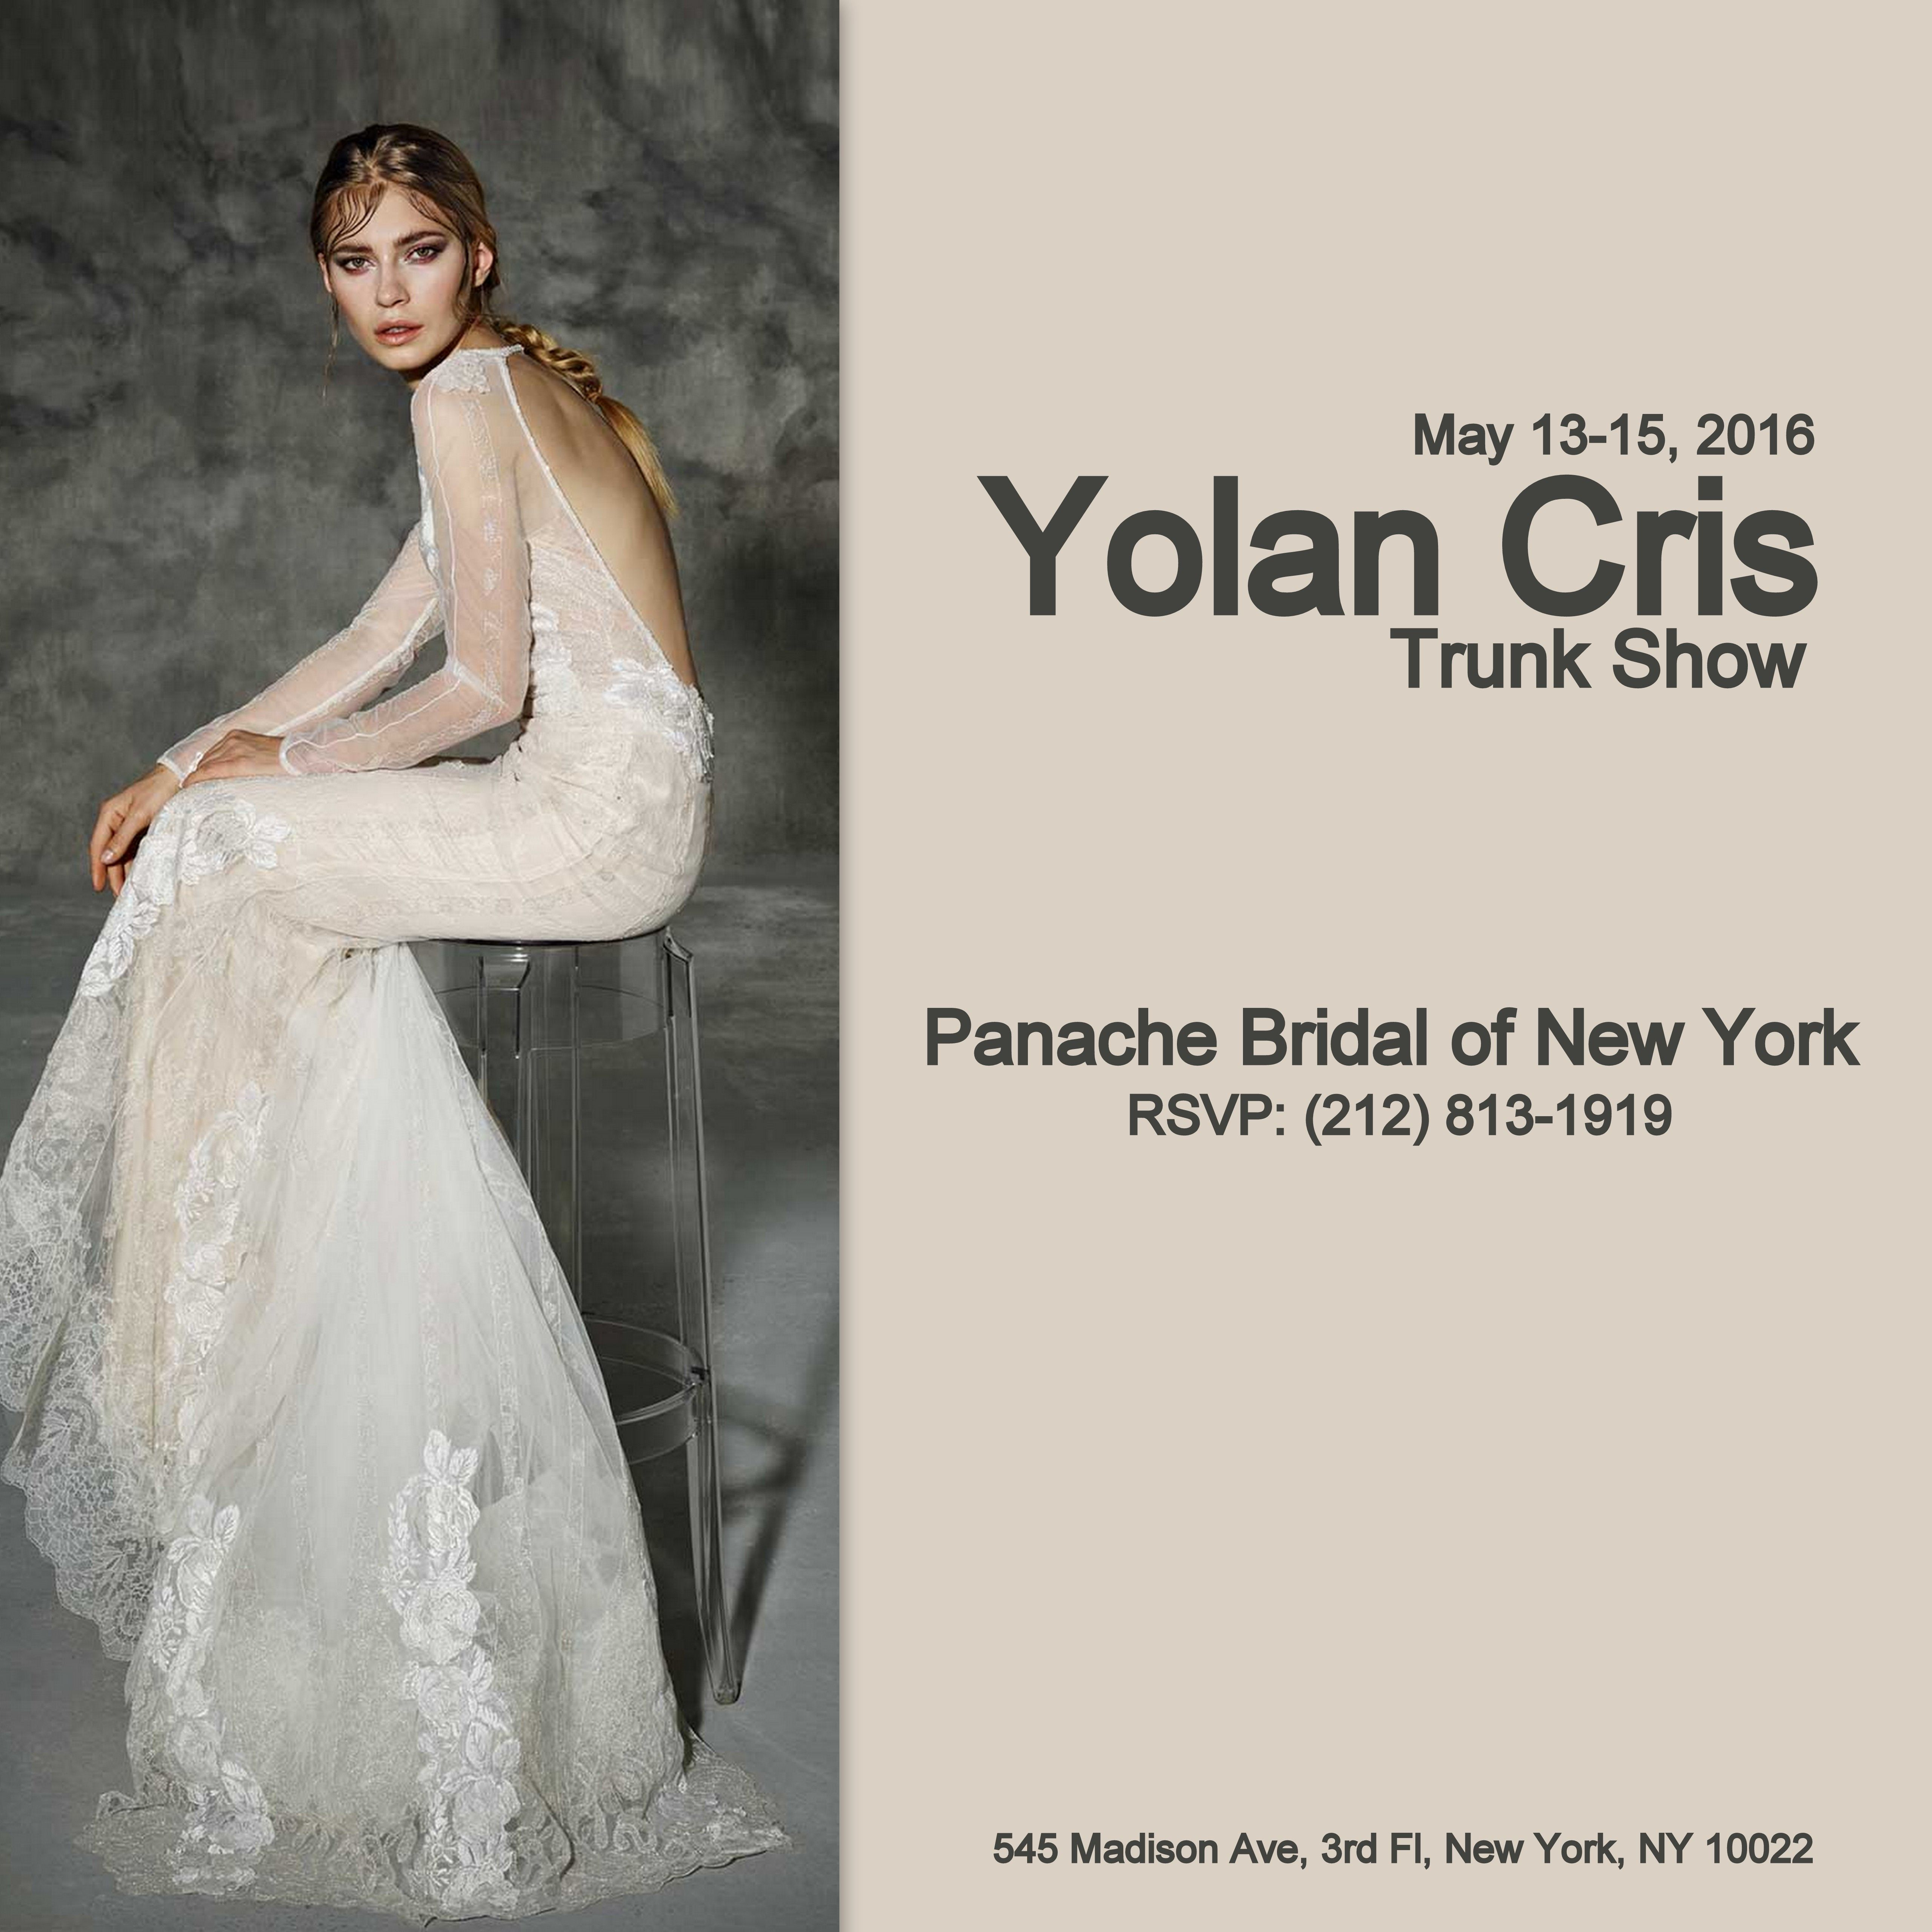 Panache Wedding Gowns: You've Invited To A Glorious Trunk Show Featuring The Boho